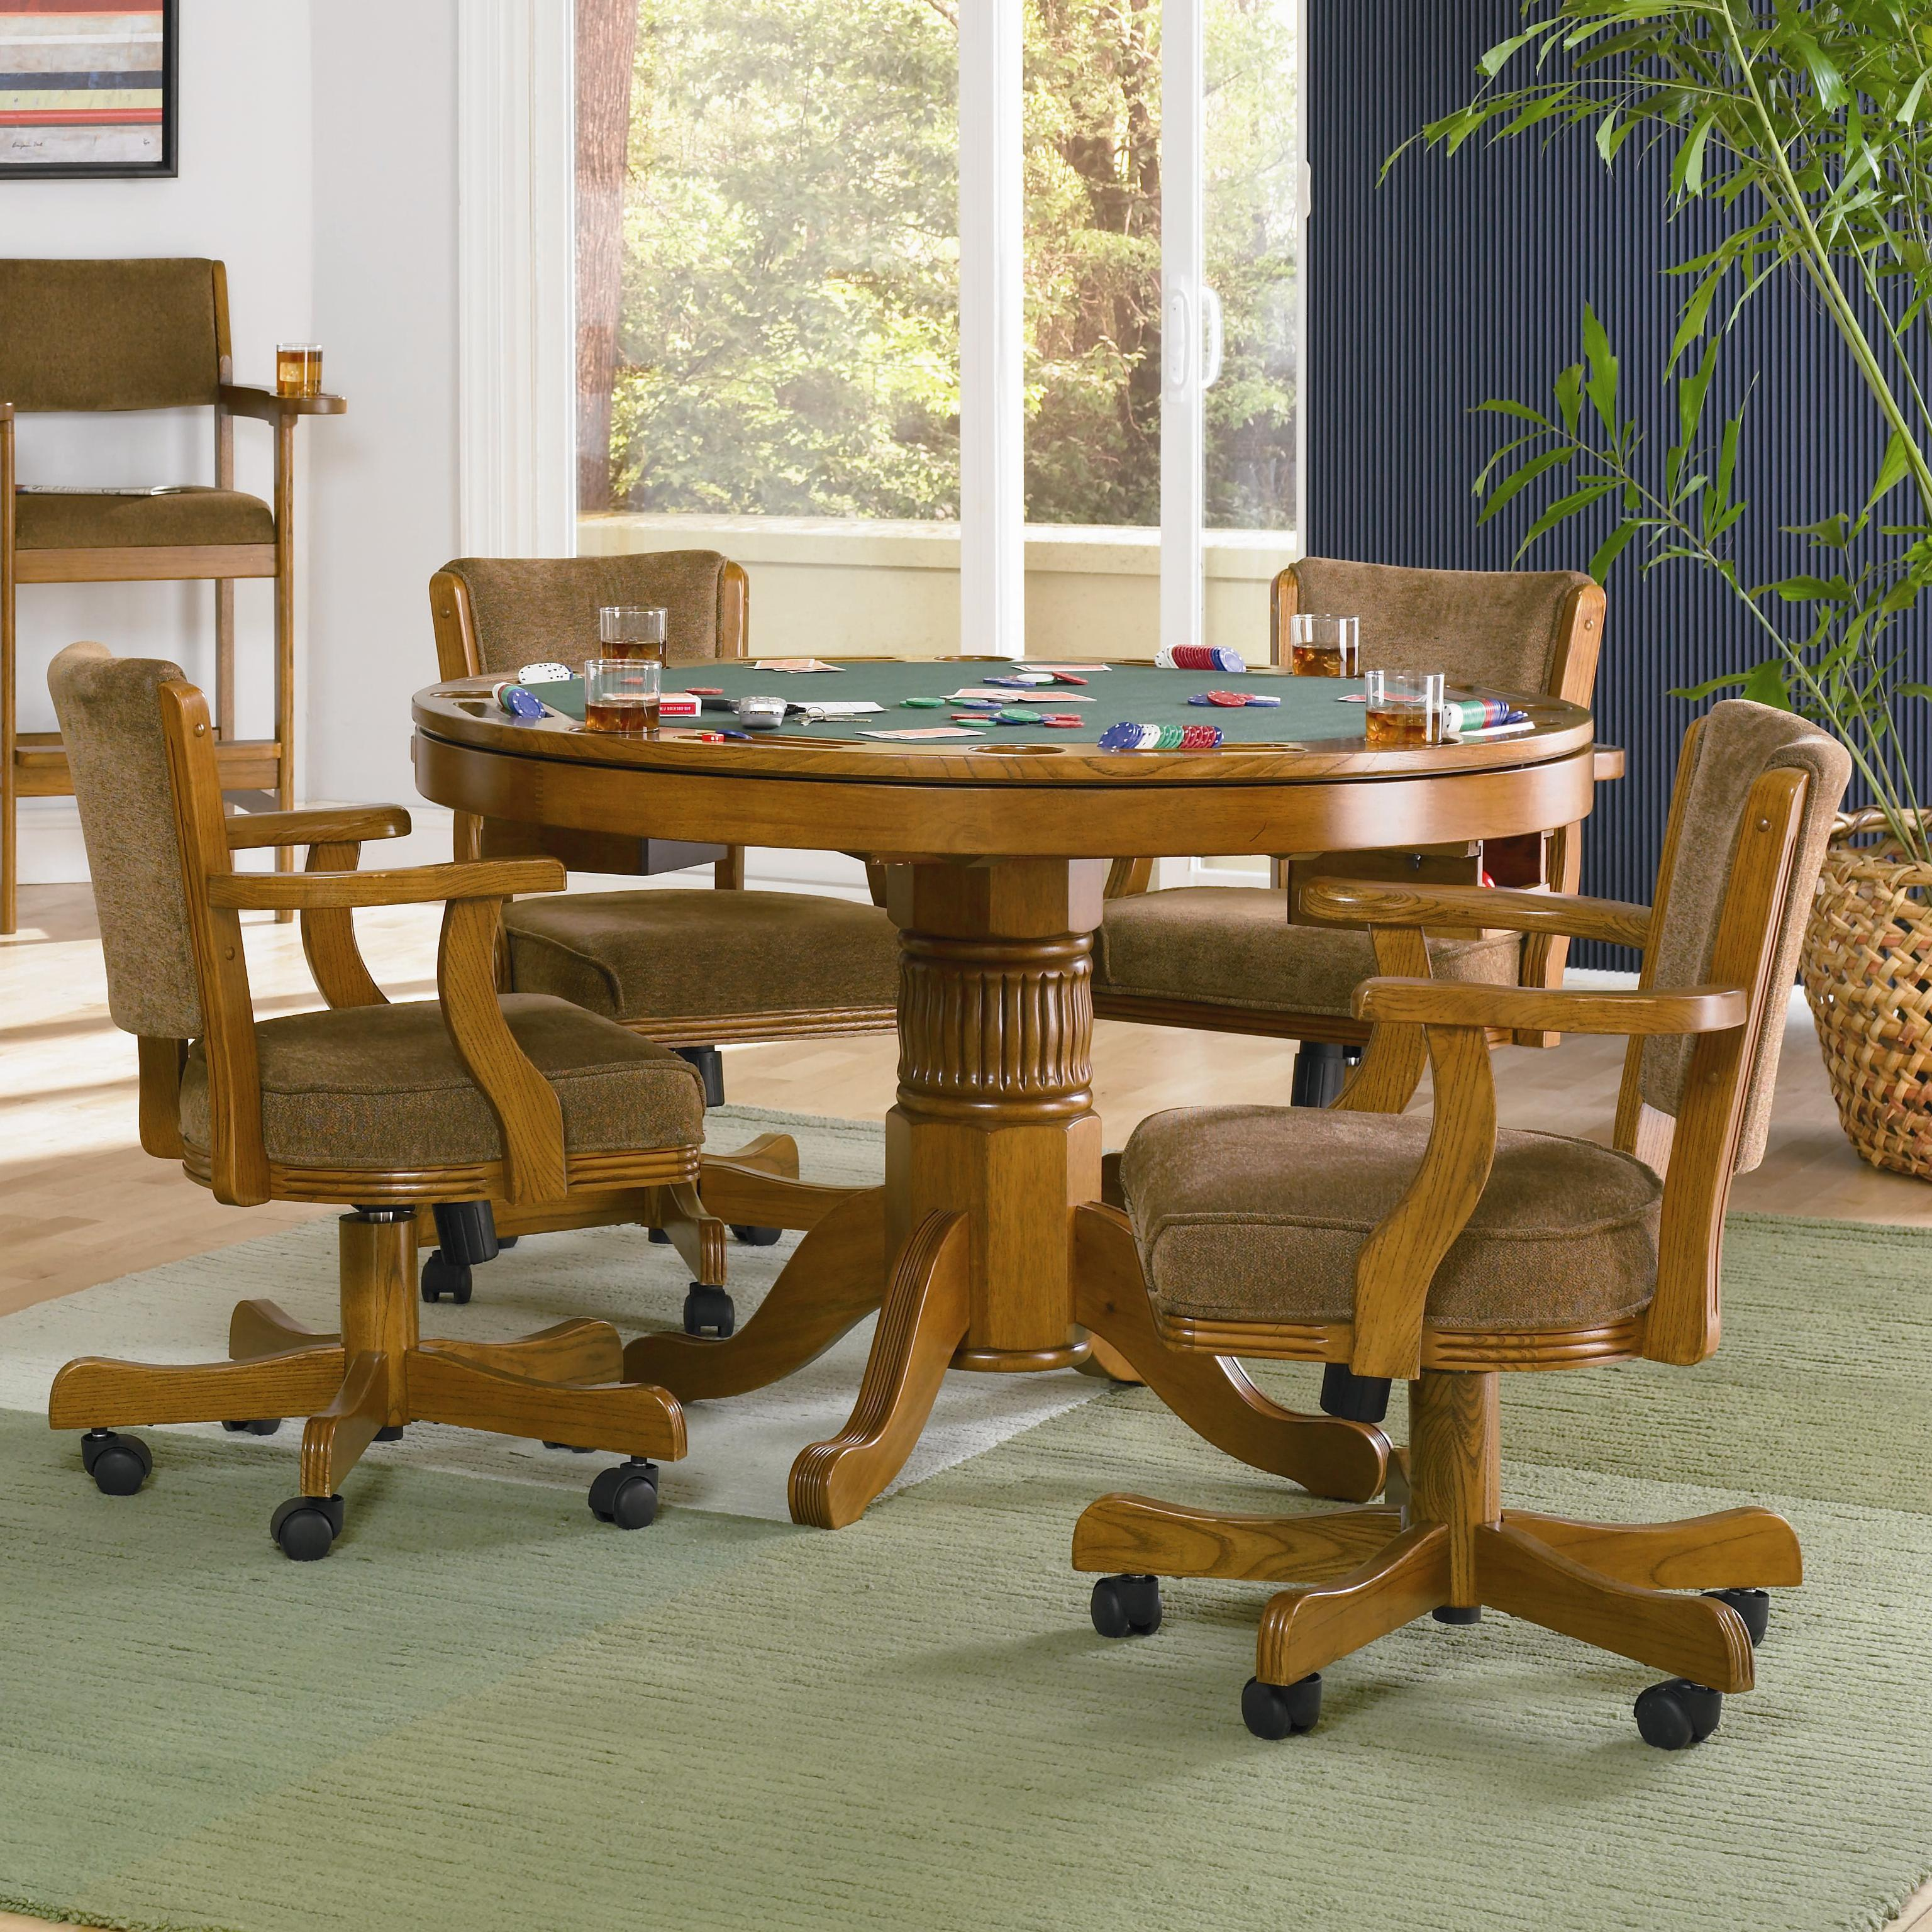 Mitchell 5 Piece Game Table Set by Coaster at Standard Furniture